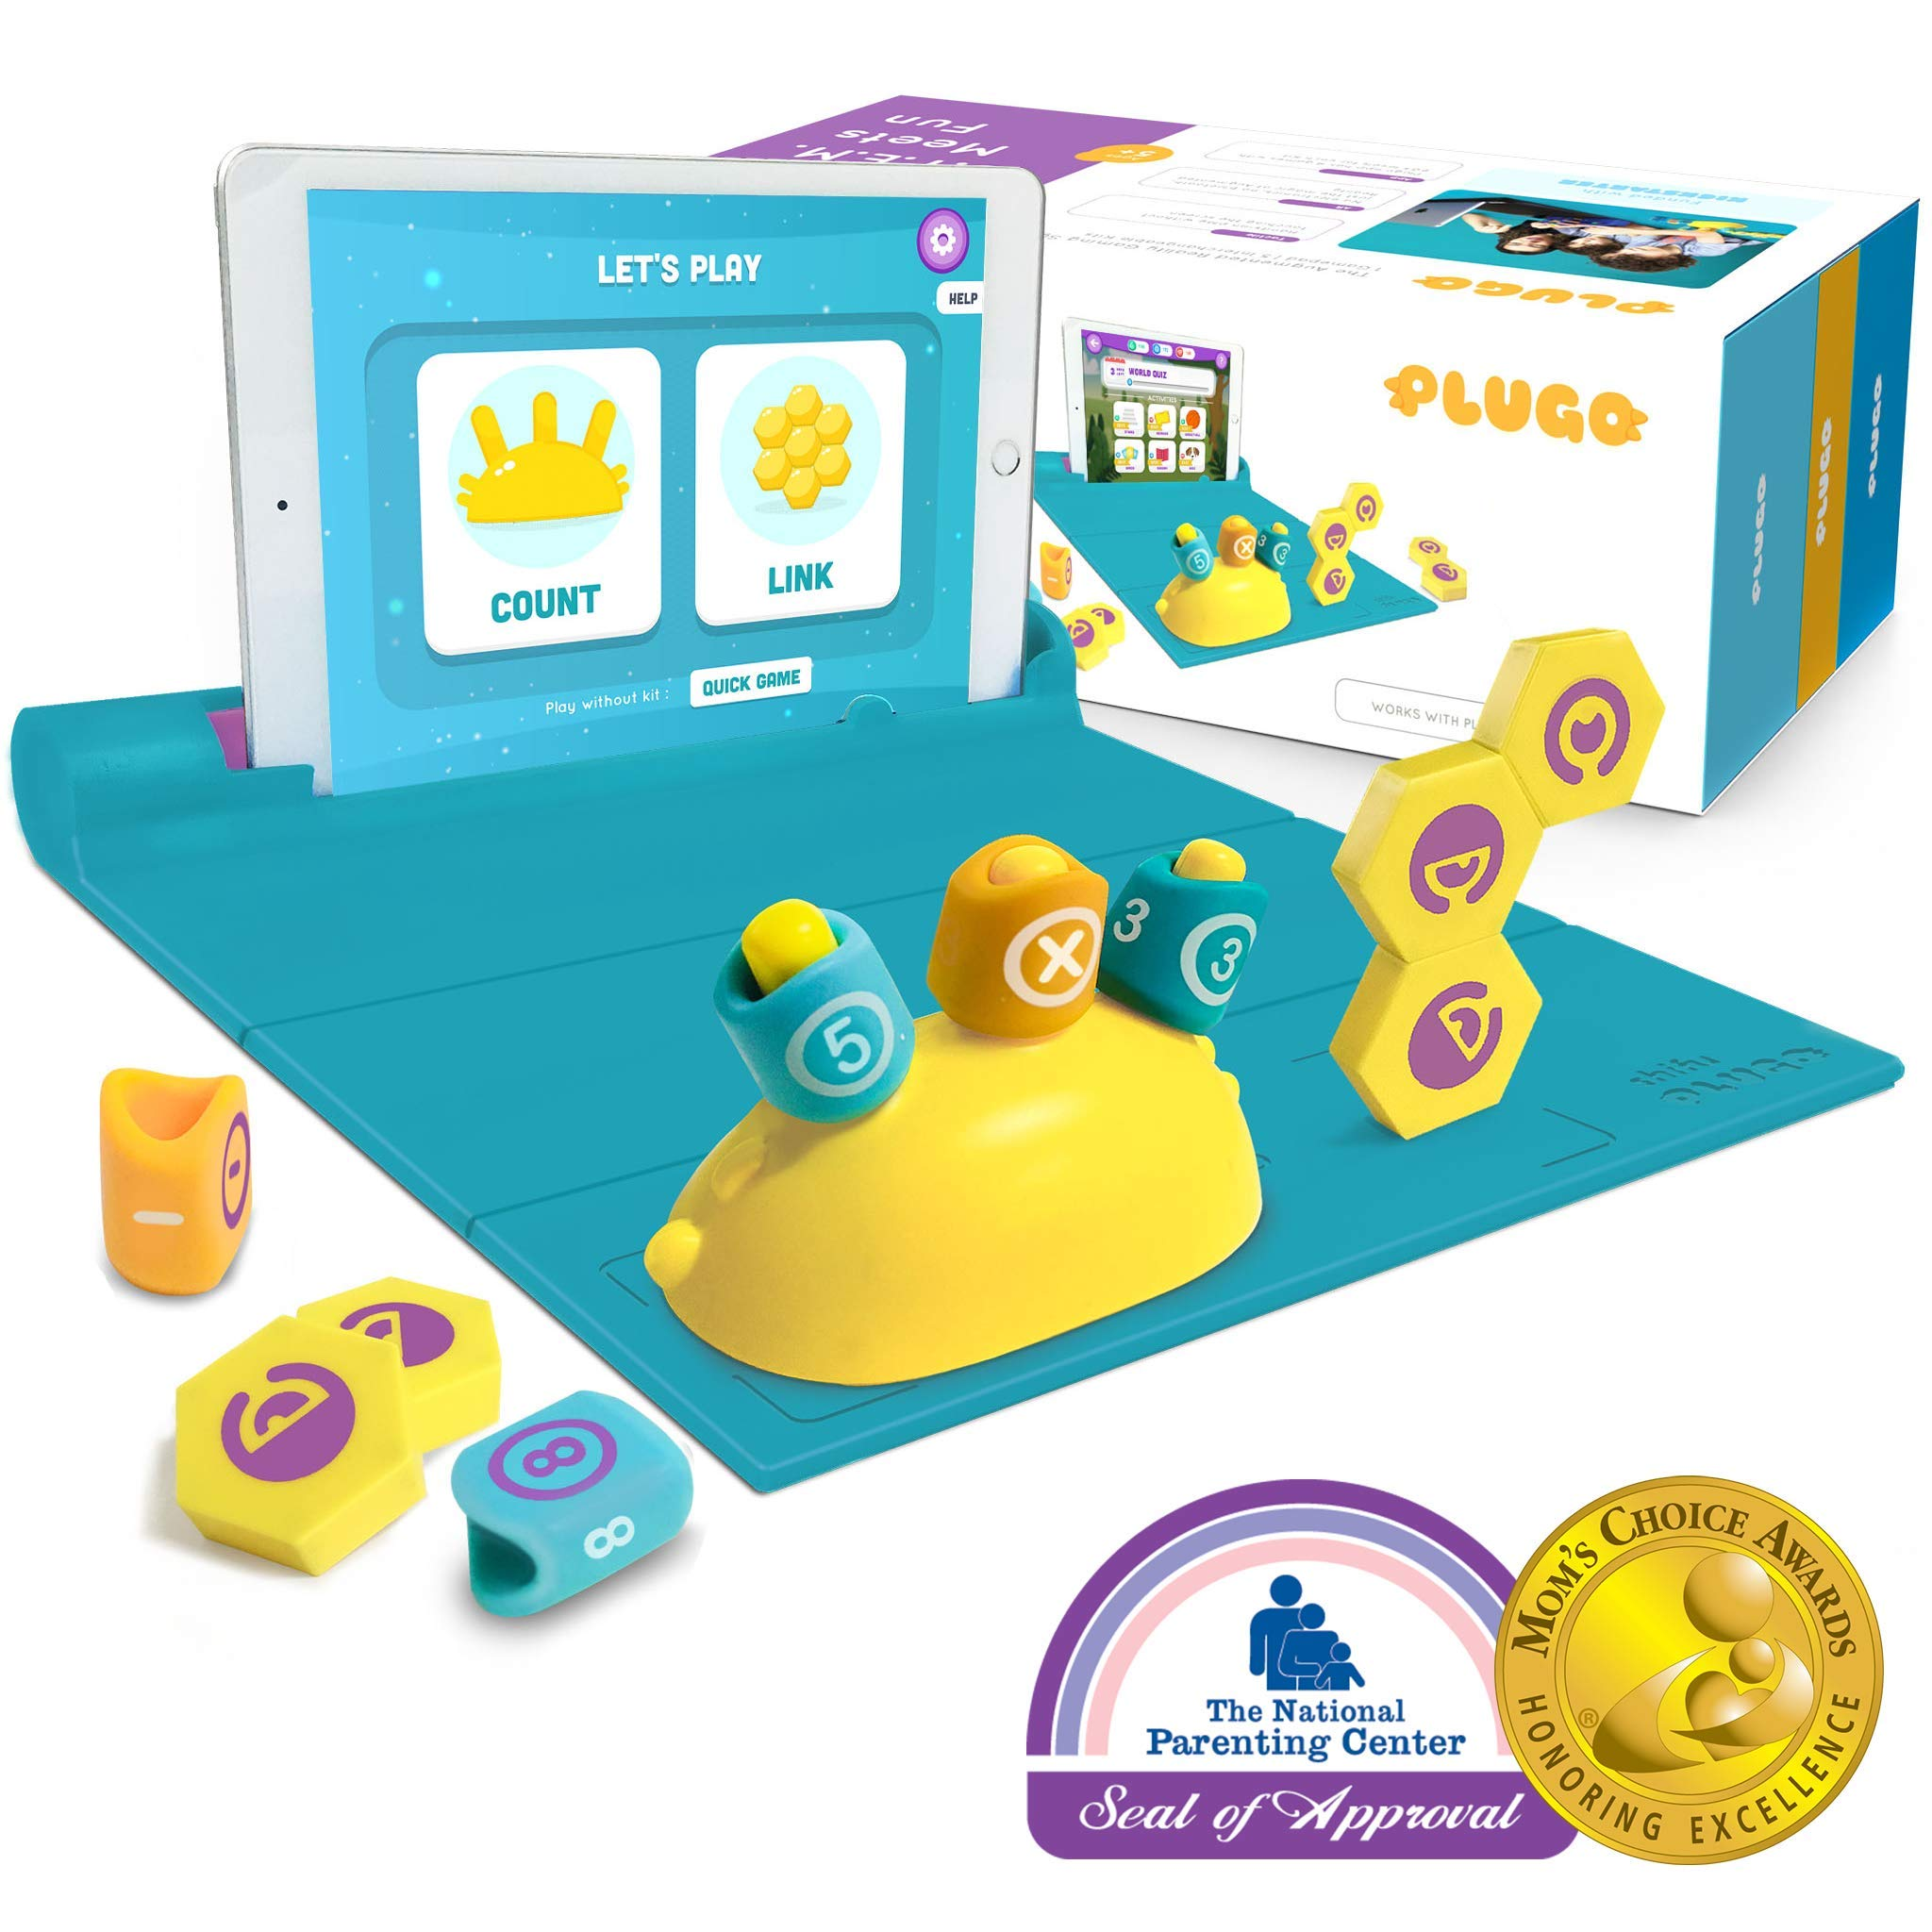 Shifu Plugo - Count & Link Combo Kit - Cool Math Games & Magnetic Building Blocks Puzzles for Kids, Educational STEM Toy for Boys & Girls Age 4 to 10 Years (iPad / iPhone Required)